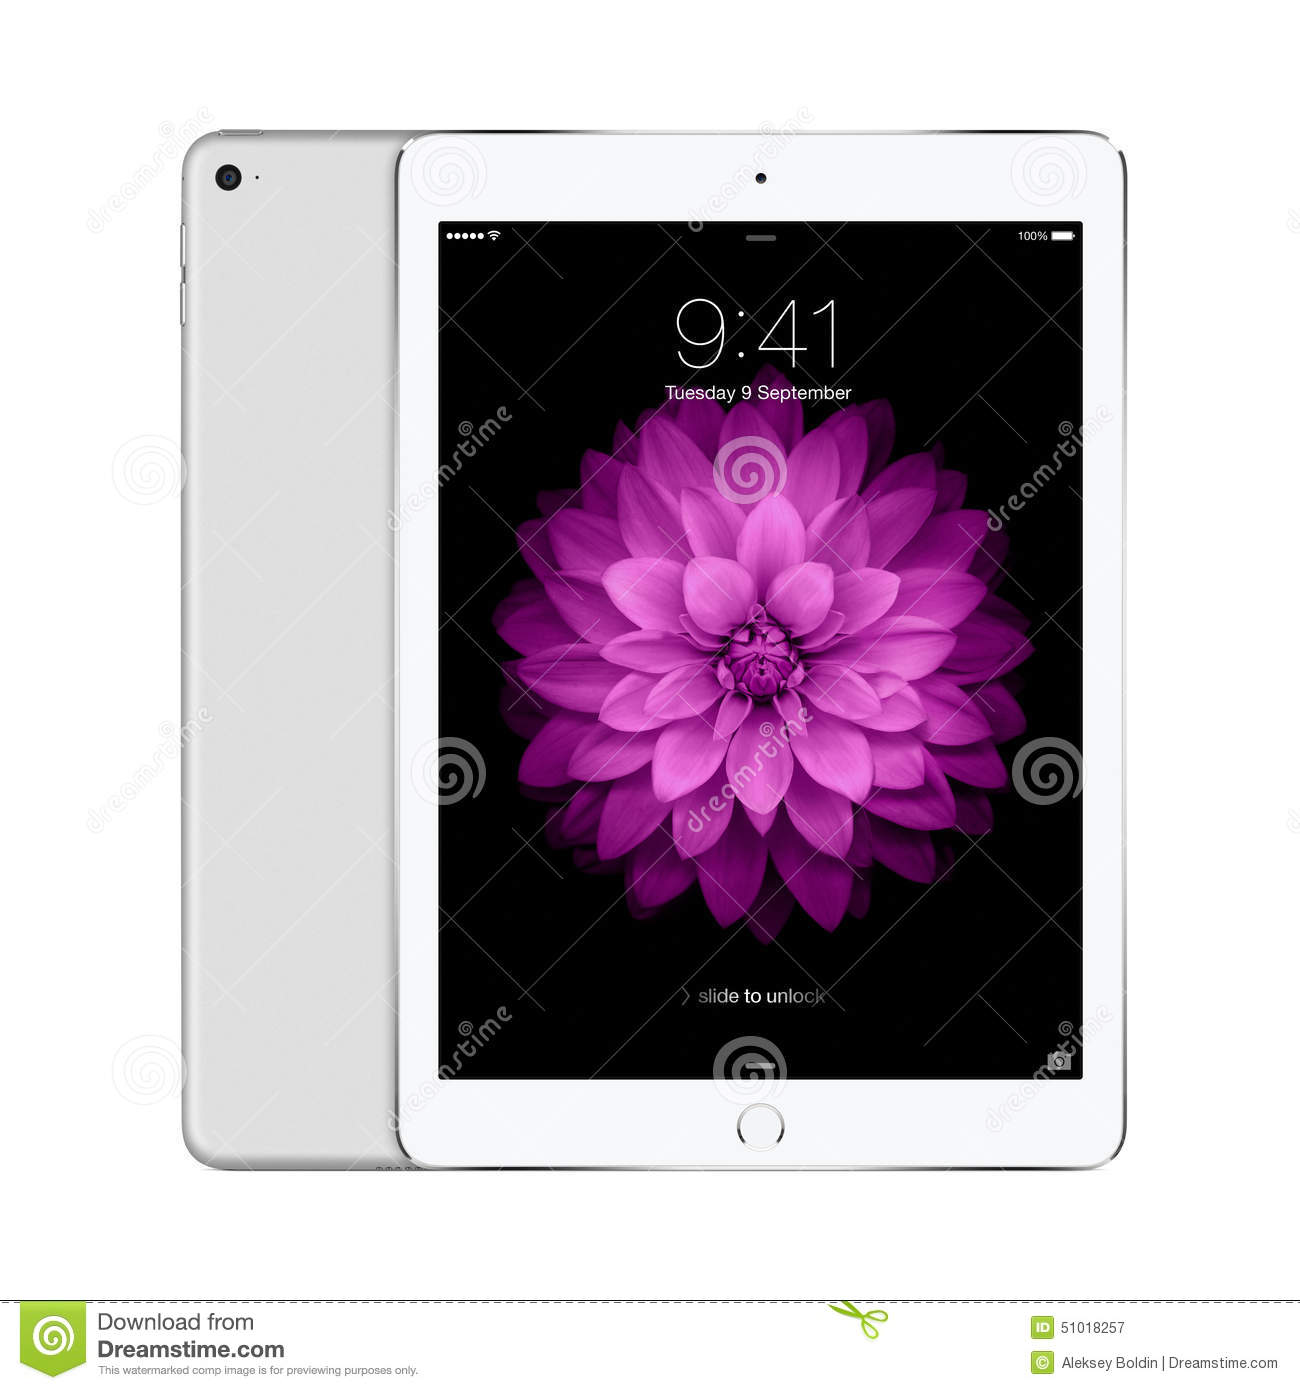 Apple Silver IPad Air 2 With IOS 8 With Lock Screen On The